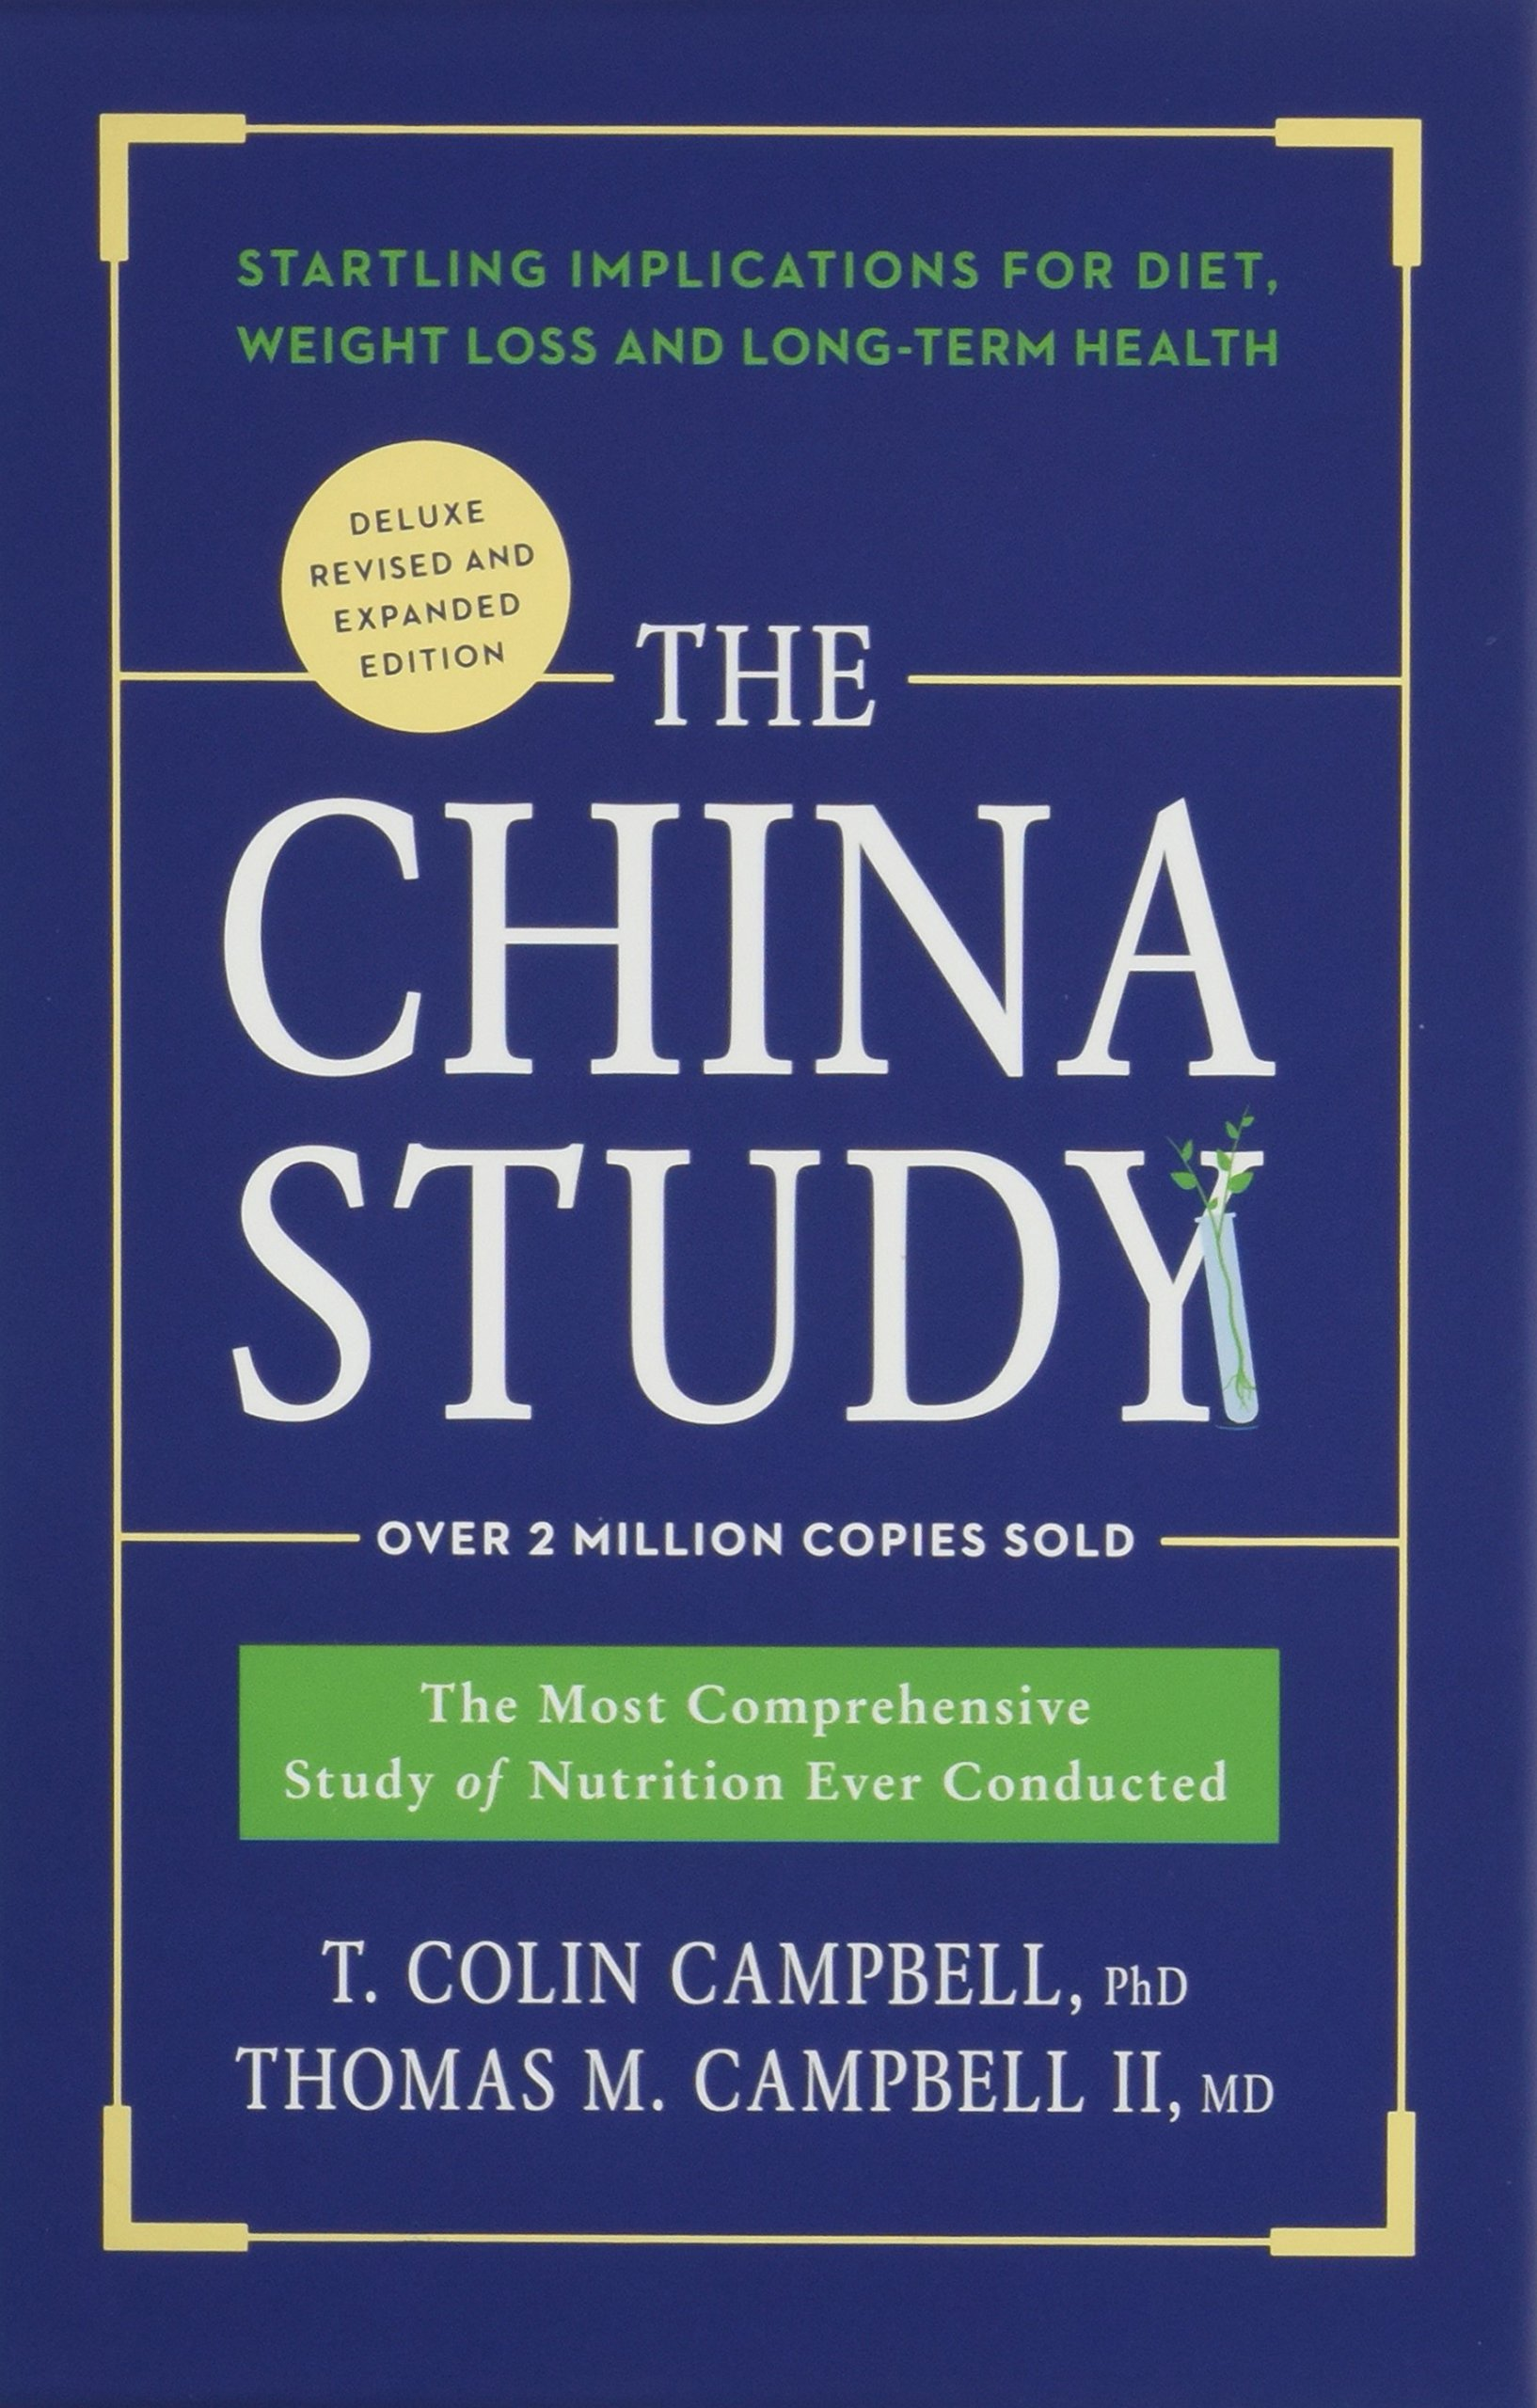 The China Study  Deluxe Revised And Expanded Edition  The Most Comprehensive Study Of Nutrition Ever Conducted And Startling Implications For Diet Weight Loss And Long Term Health